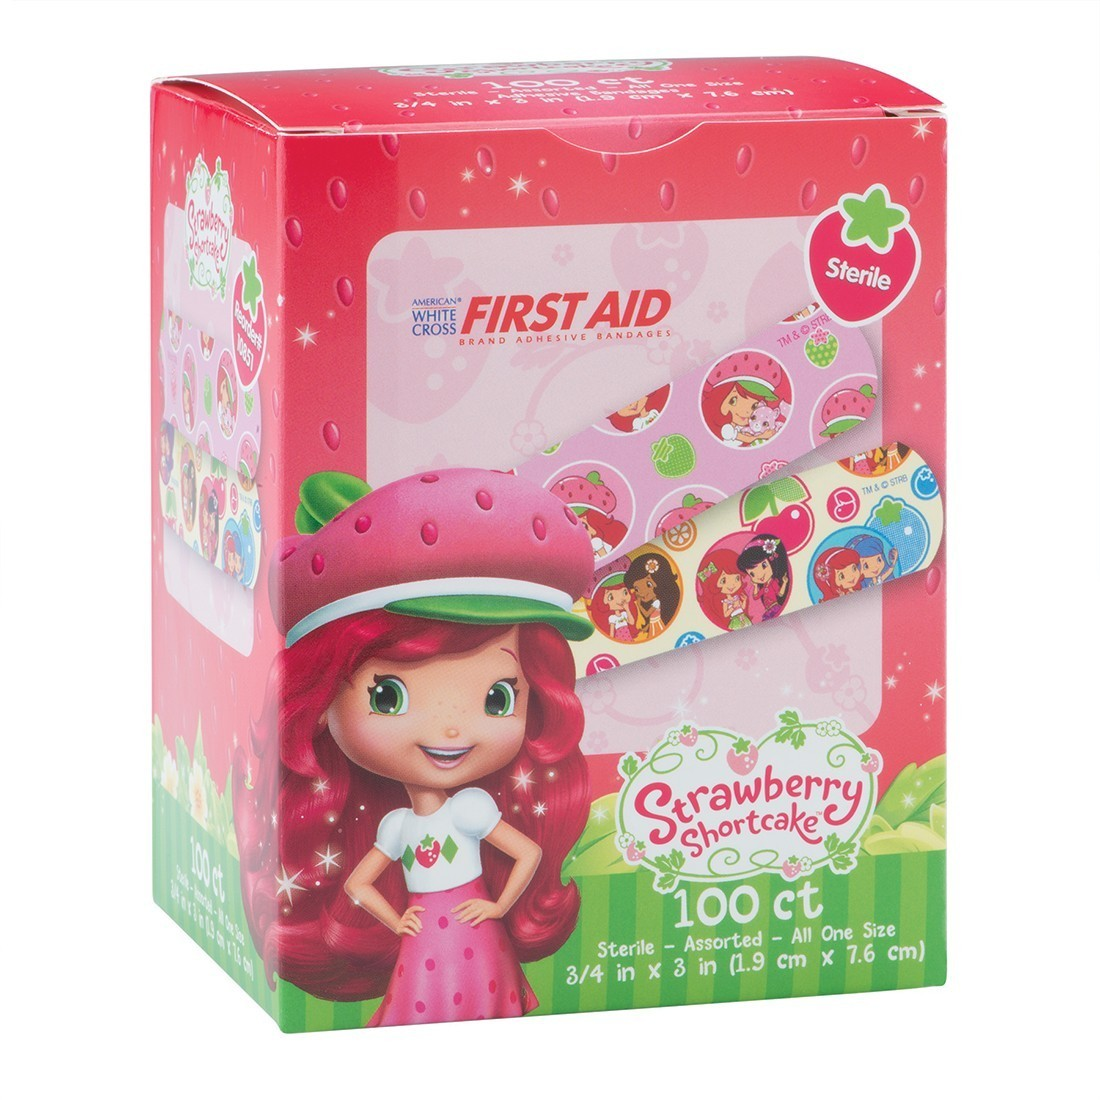 First Aid Strawberry Shortcake Bandages [image]